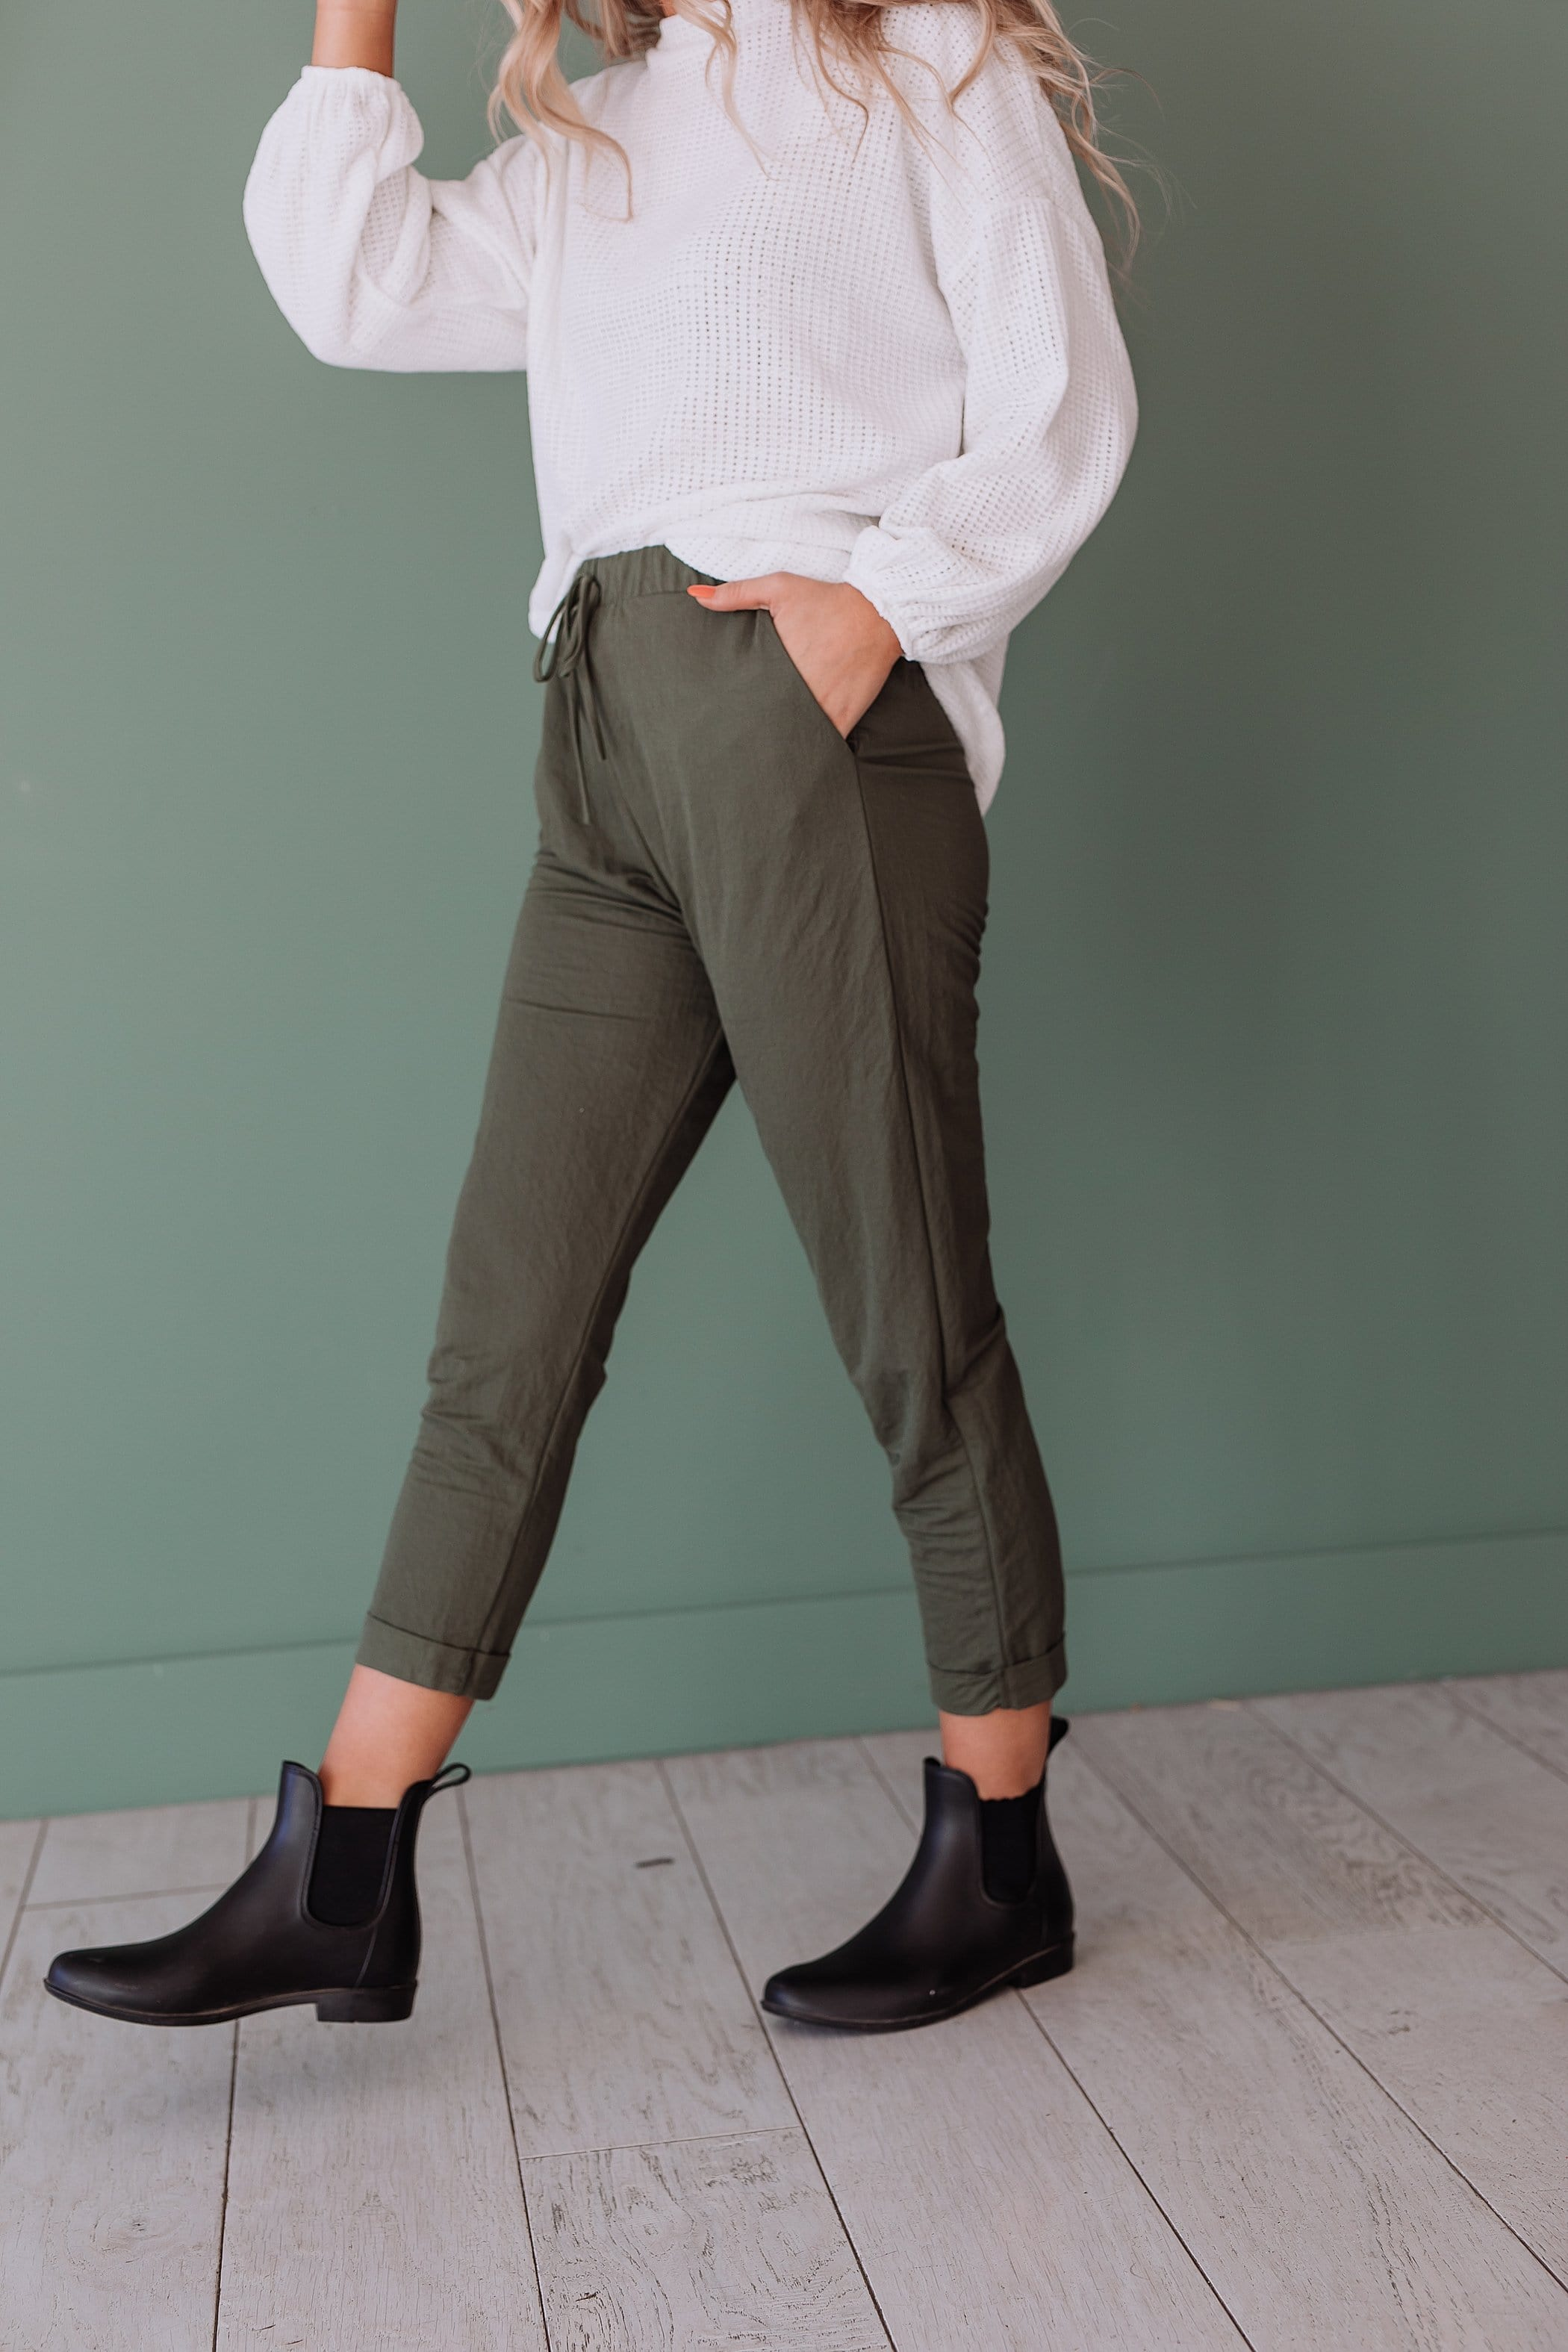 The Kennett Cuffed Pants in Black and Olive